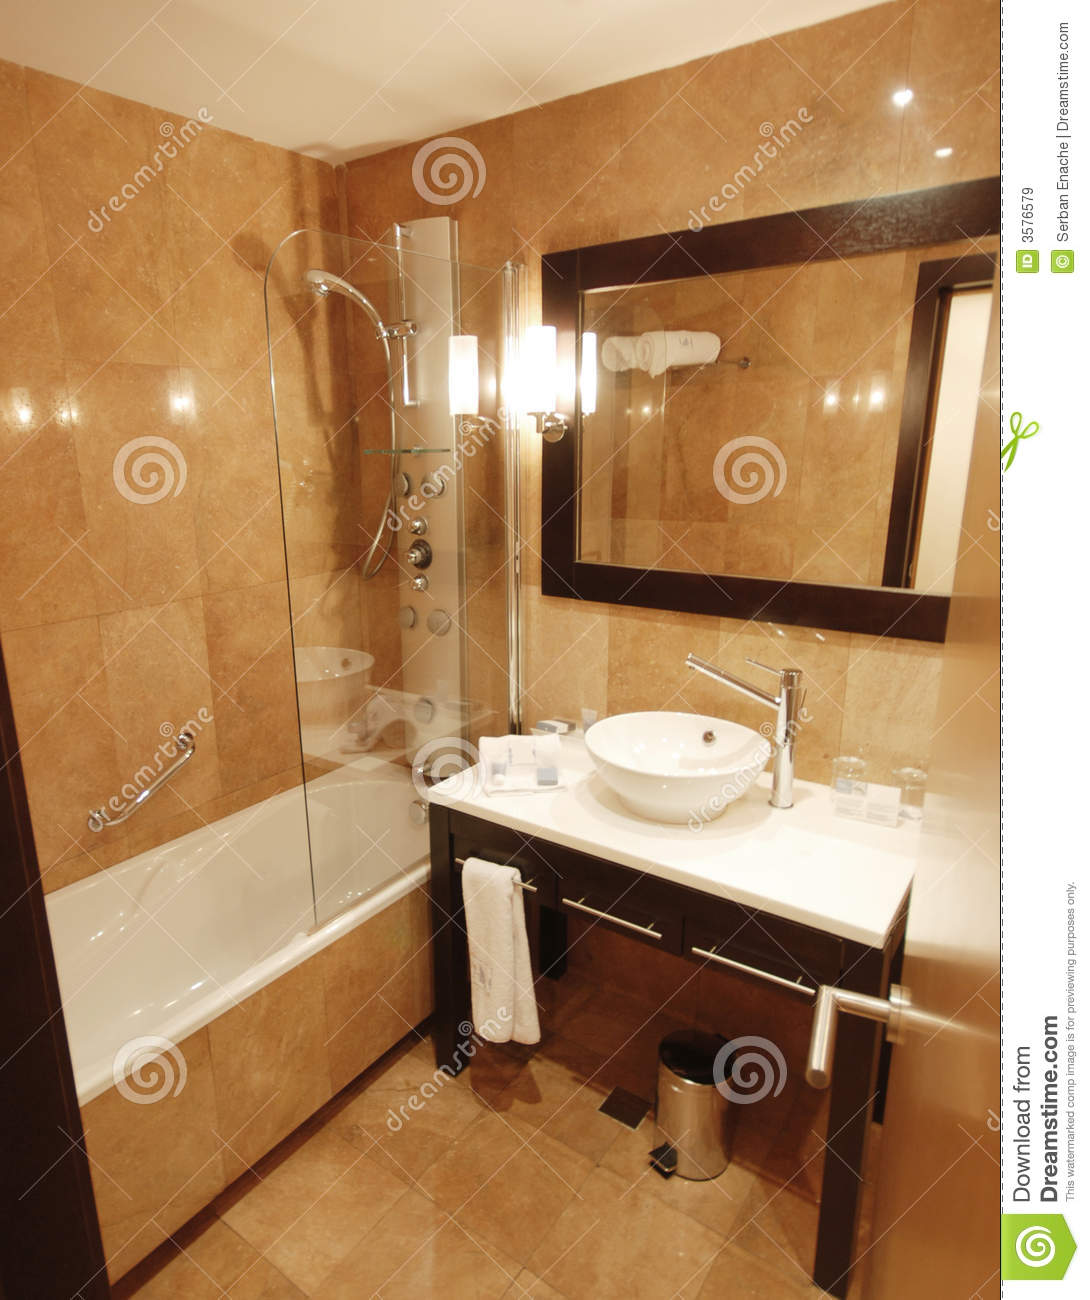 Marble bathroom stock image image of luxurious gleaming for Marble bathroom bin